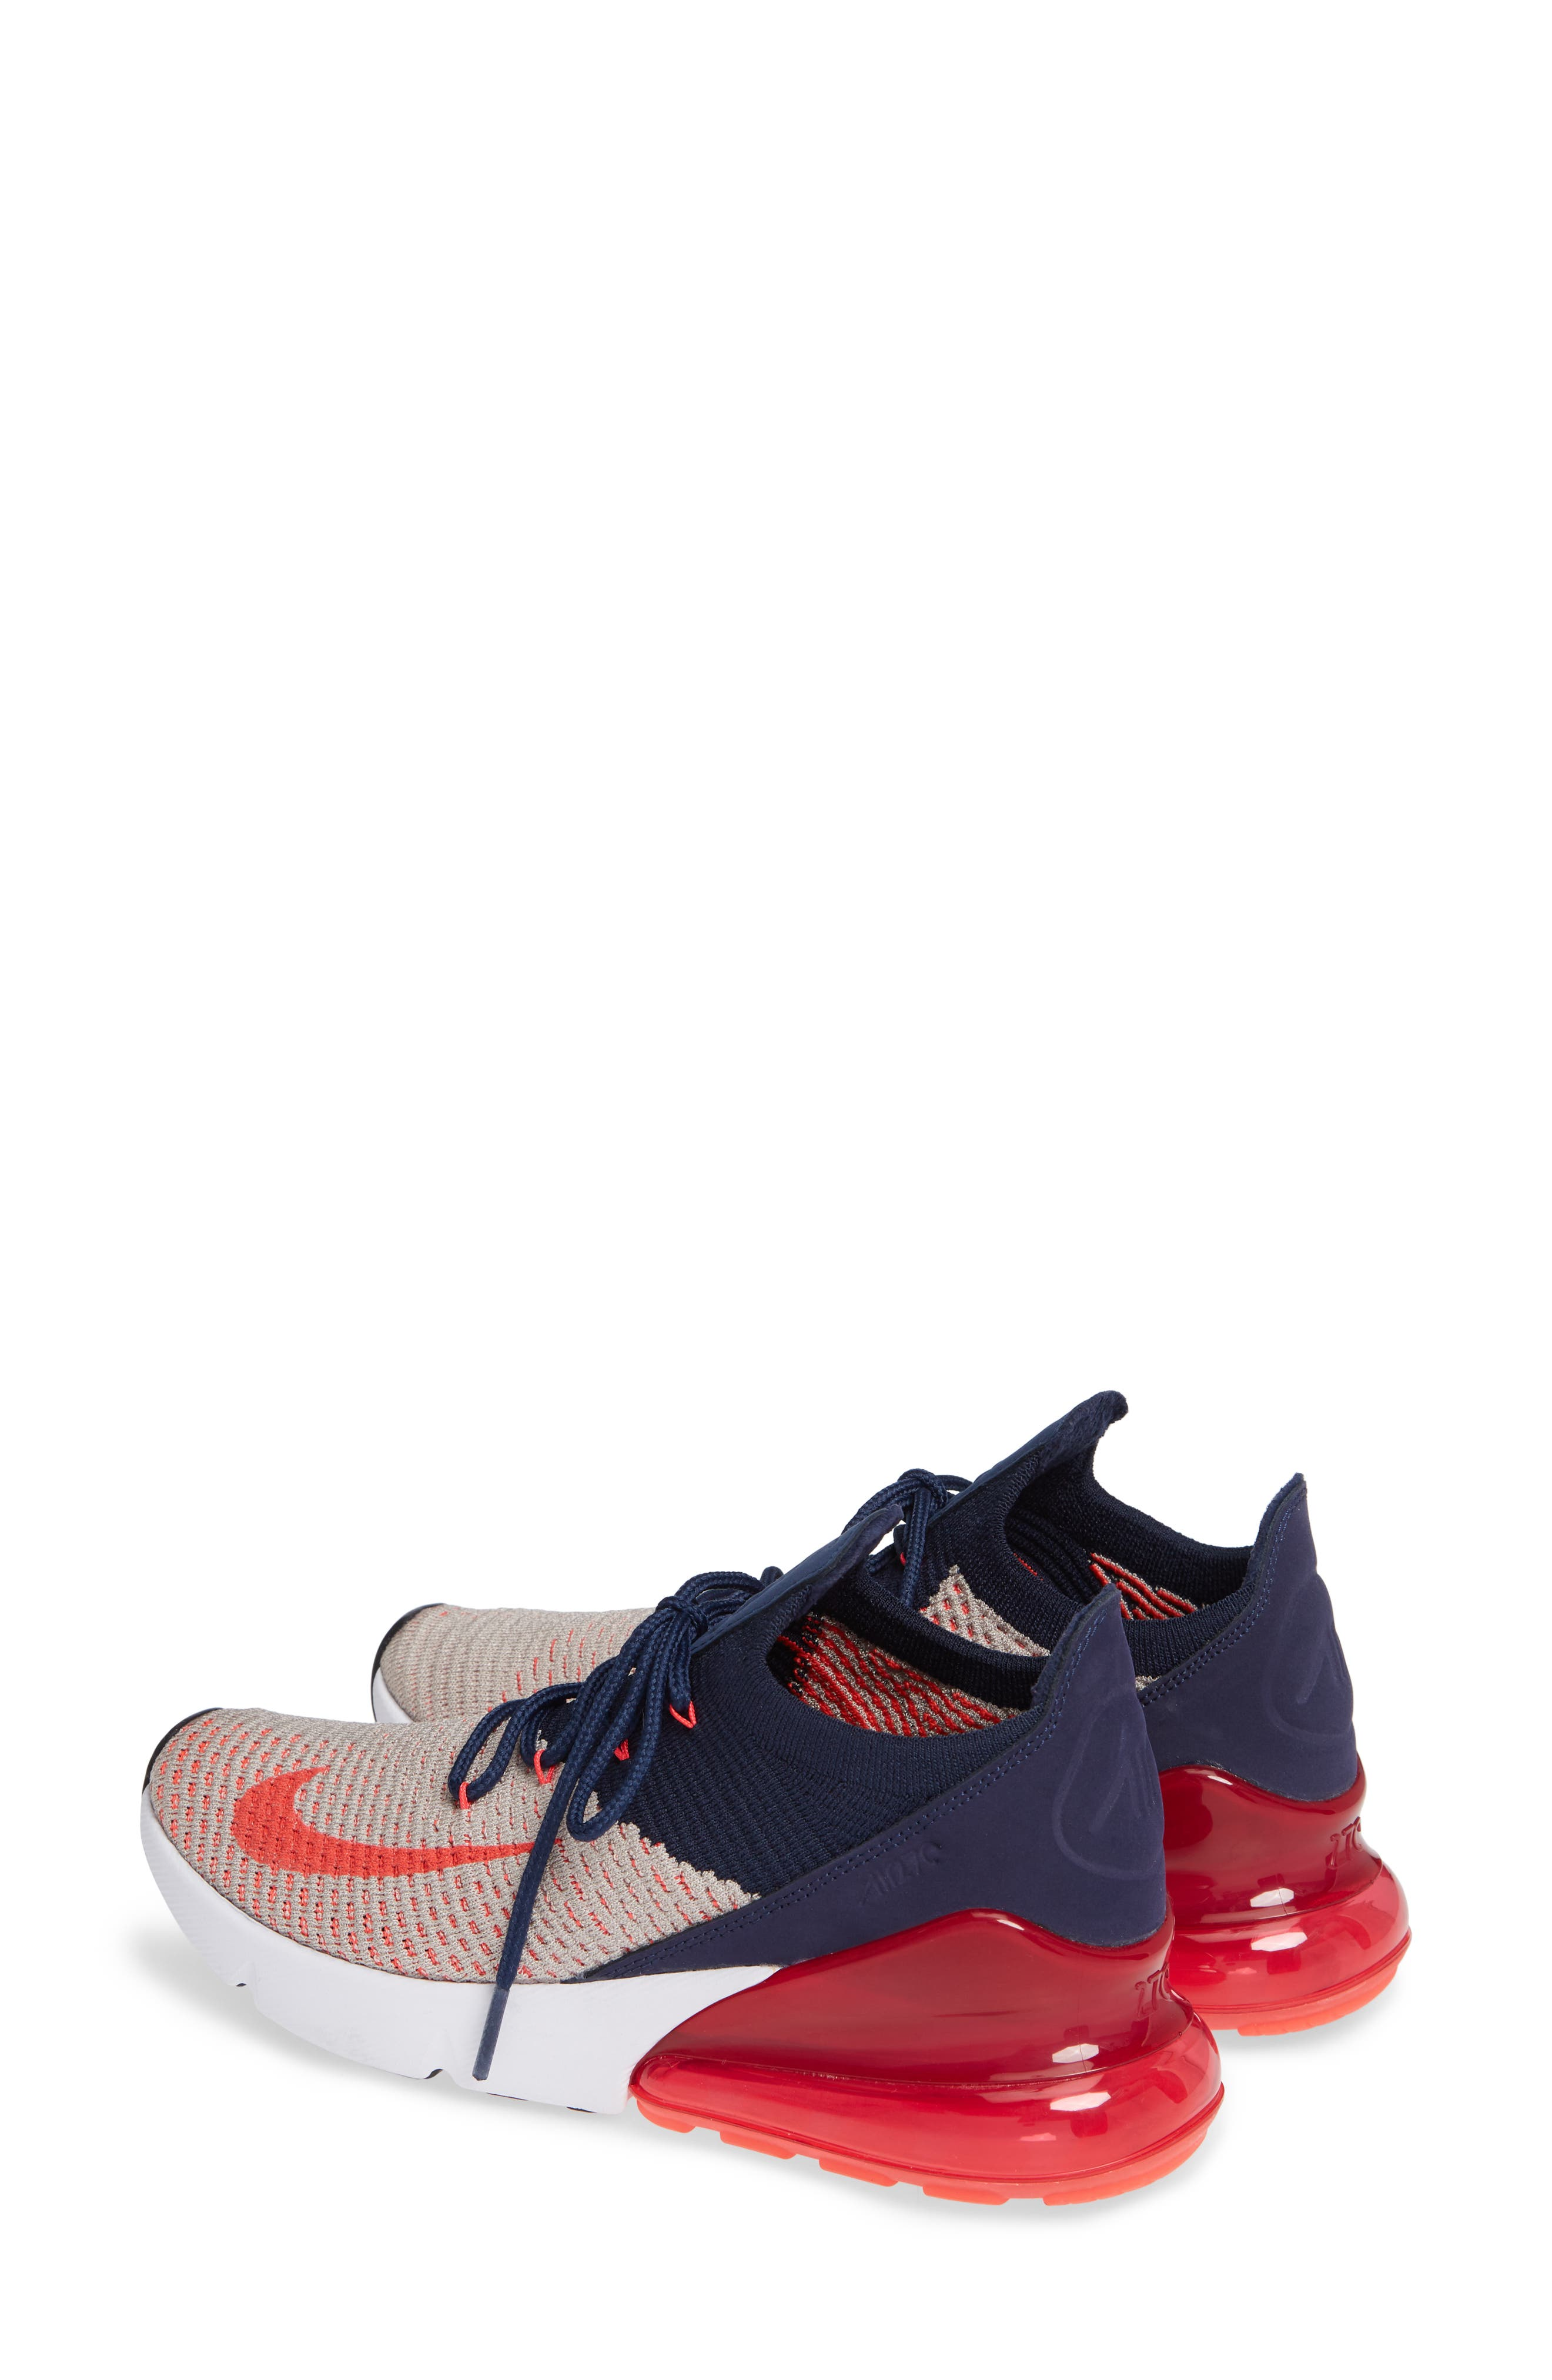 Air Max 270 Flyknit Sneaker,                             Alternate thumbnail 2, color,                             Moon Particle/ Red Orbit/ Navy